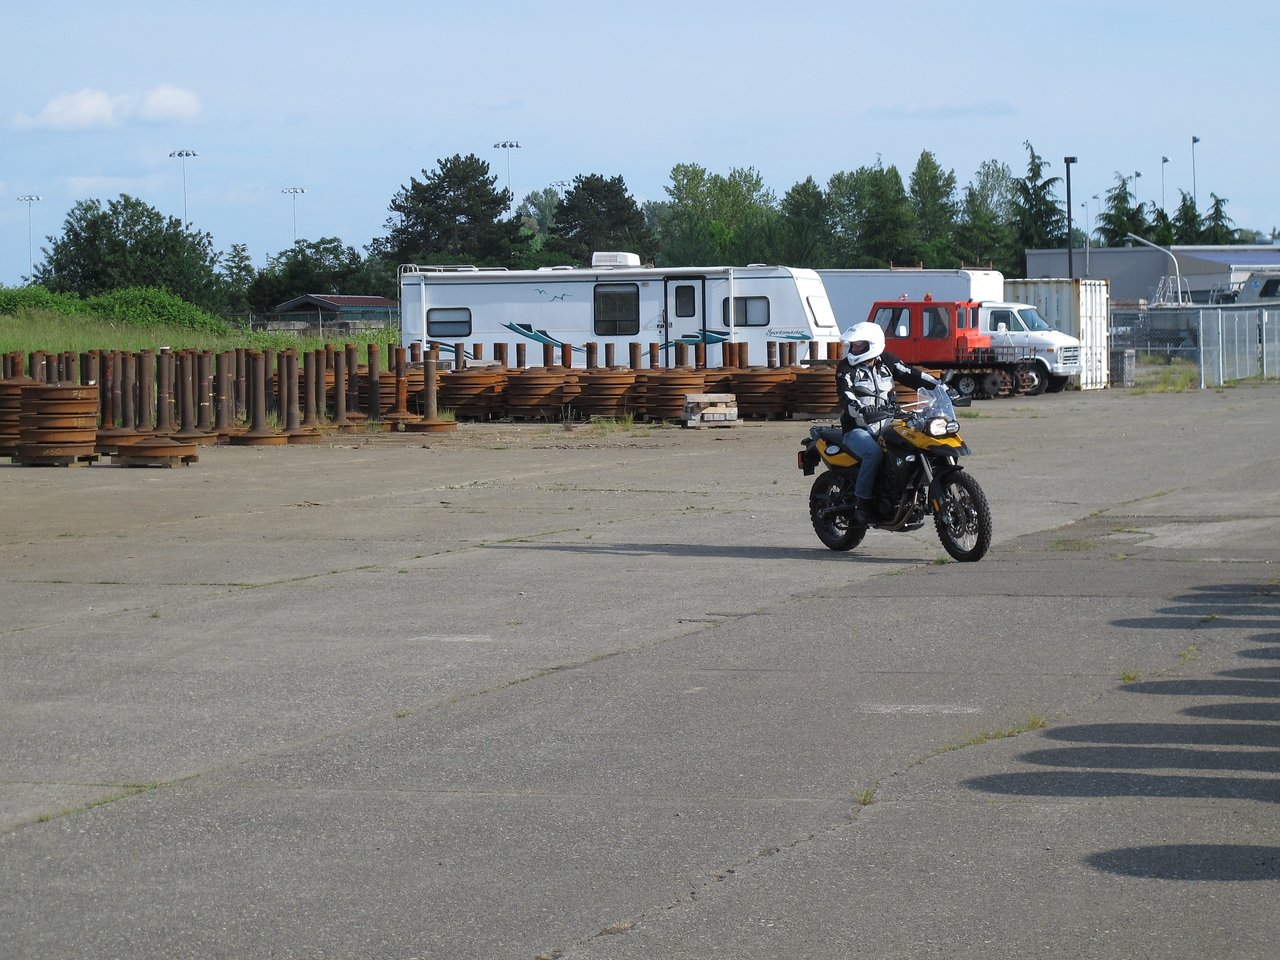 Monday, June 6, 2011. After work I helped a colleague familiarize himself with his new motorcycle.